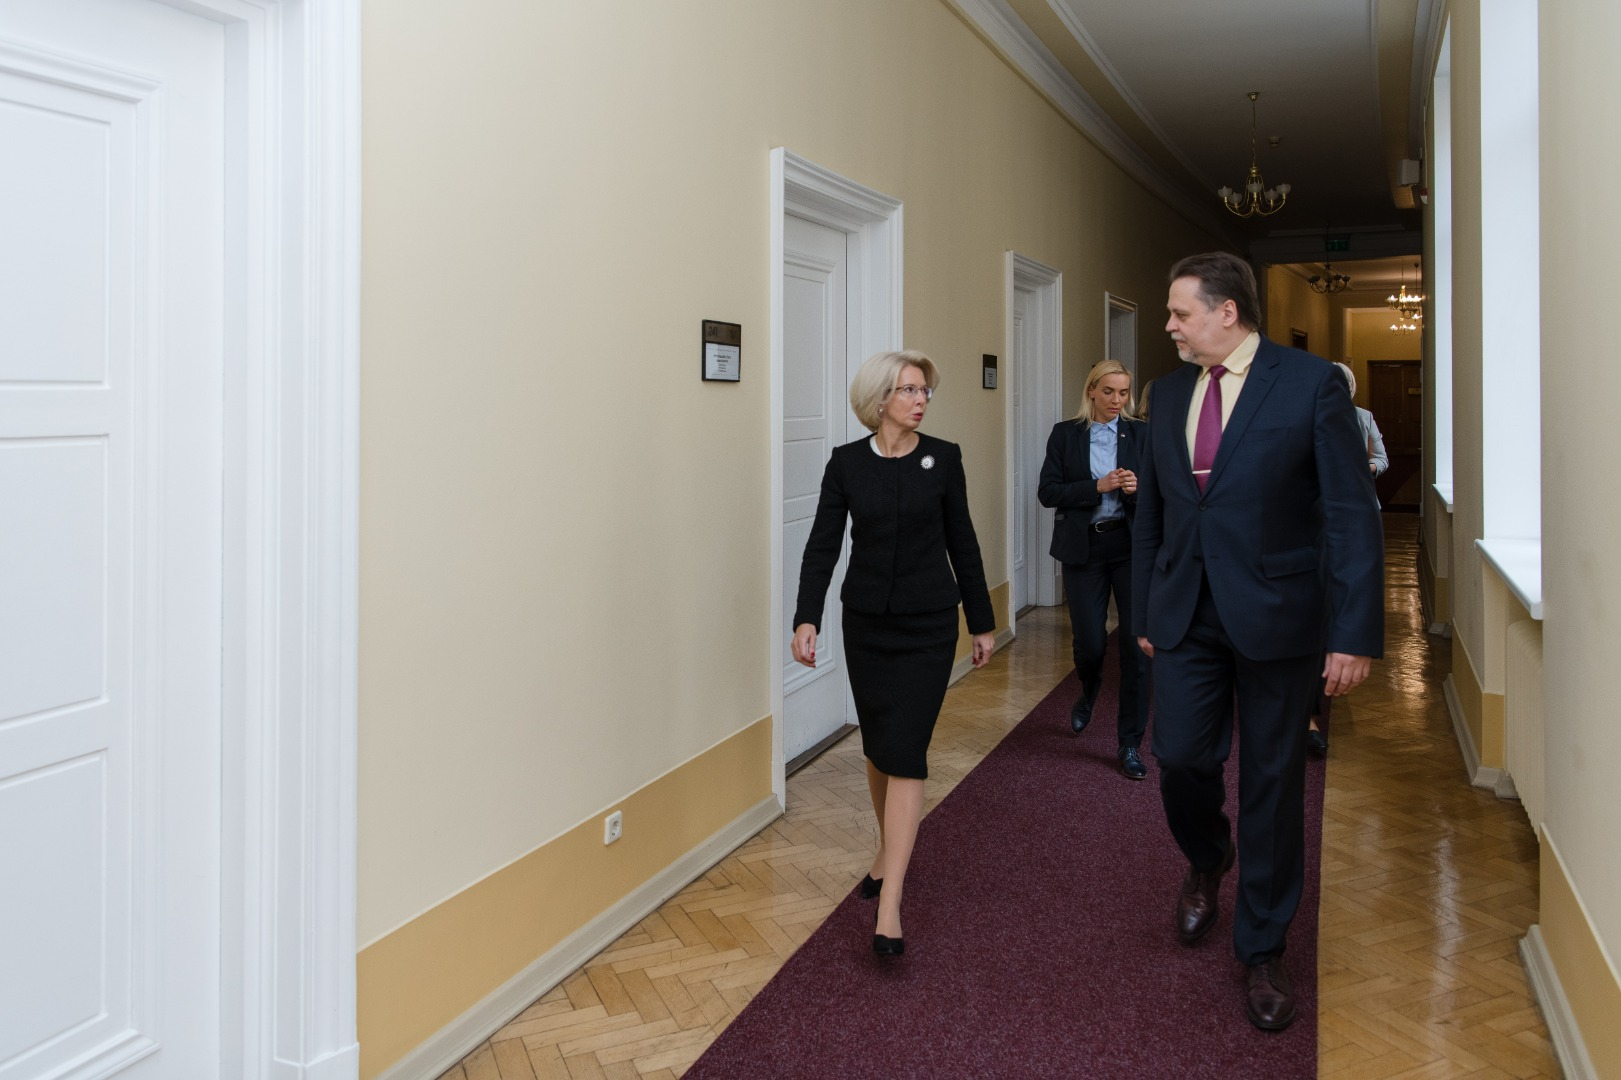 06.10.2020. Aigars Strupiss, the Chief Justice of the Supreme Court, and Inara Murniece, the Speaker of the Saeima (Parliament) held a meeting at the Supreme Court and discussed the ways how to strengthen the rule of law and justice in Latvia. Photo by the Saeima Press Service